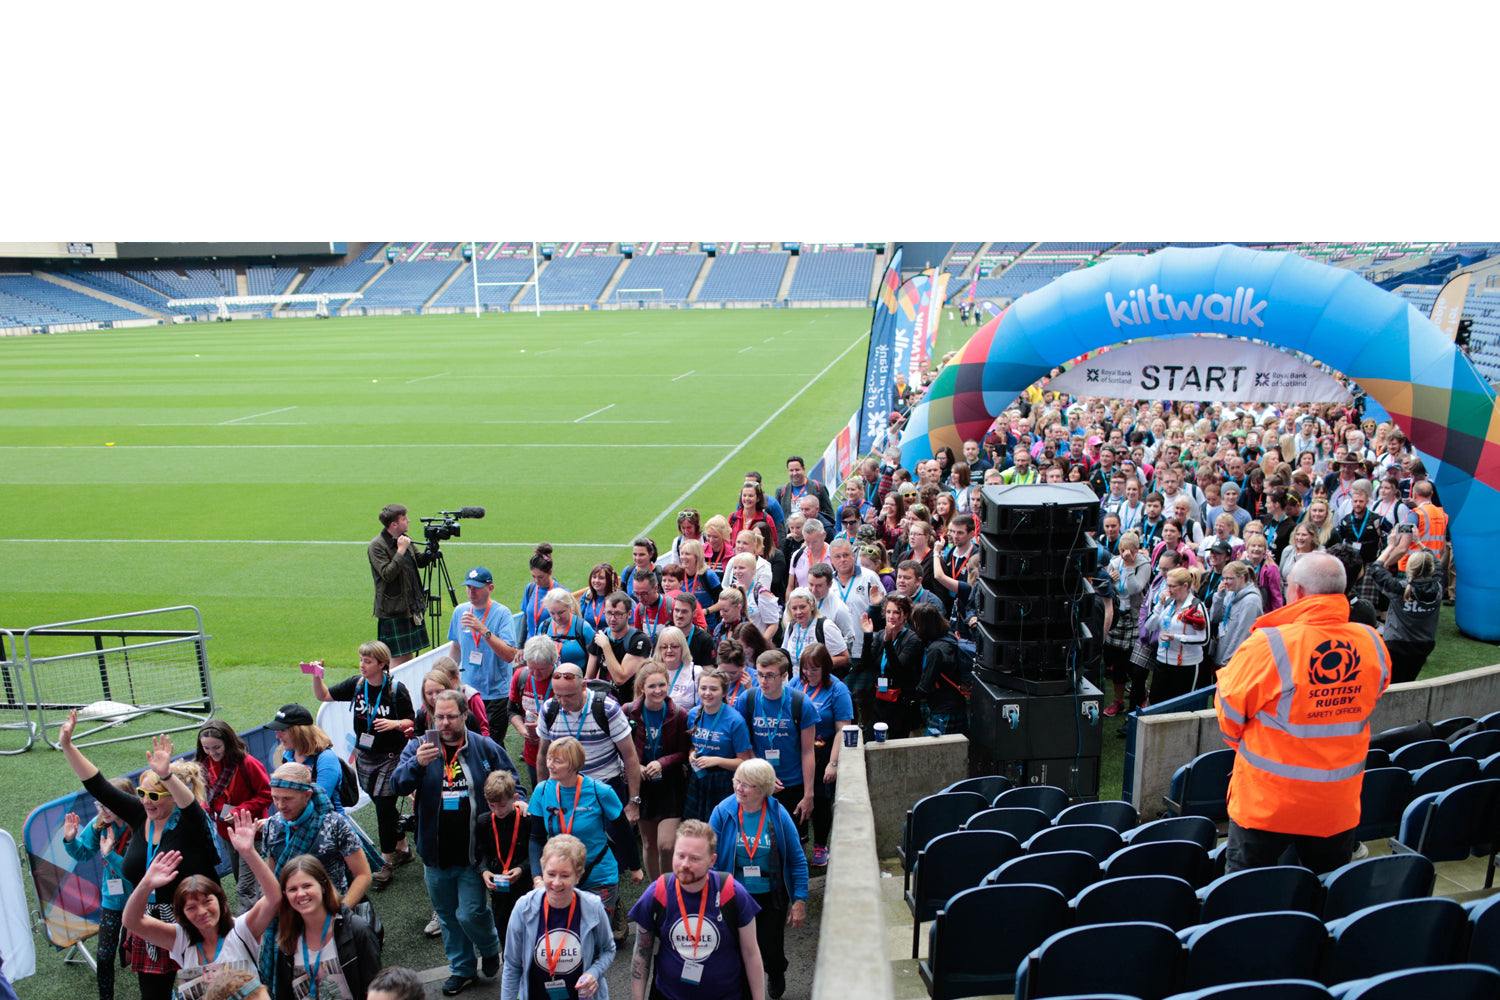 Crowds gather at the start of the Kiltwalk at Murrayfield